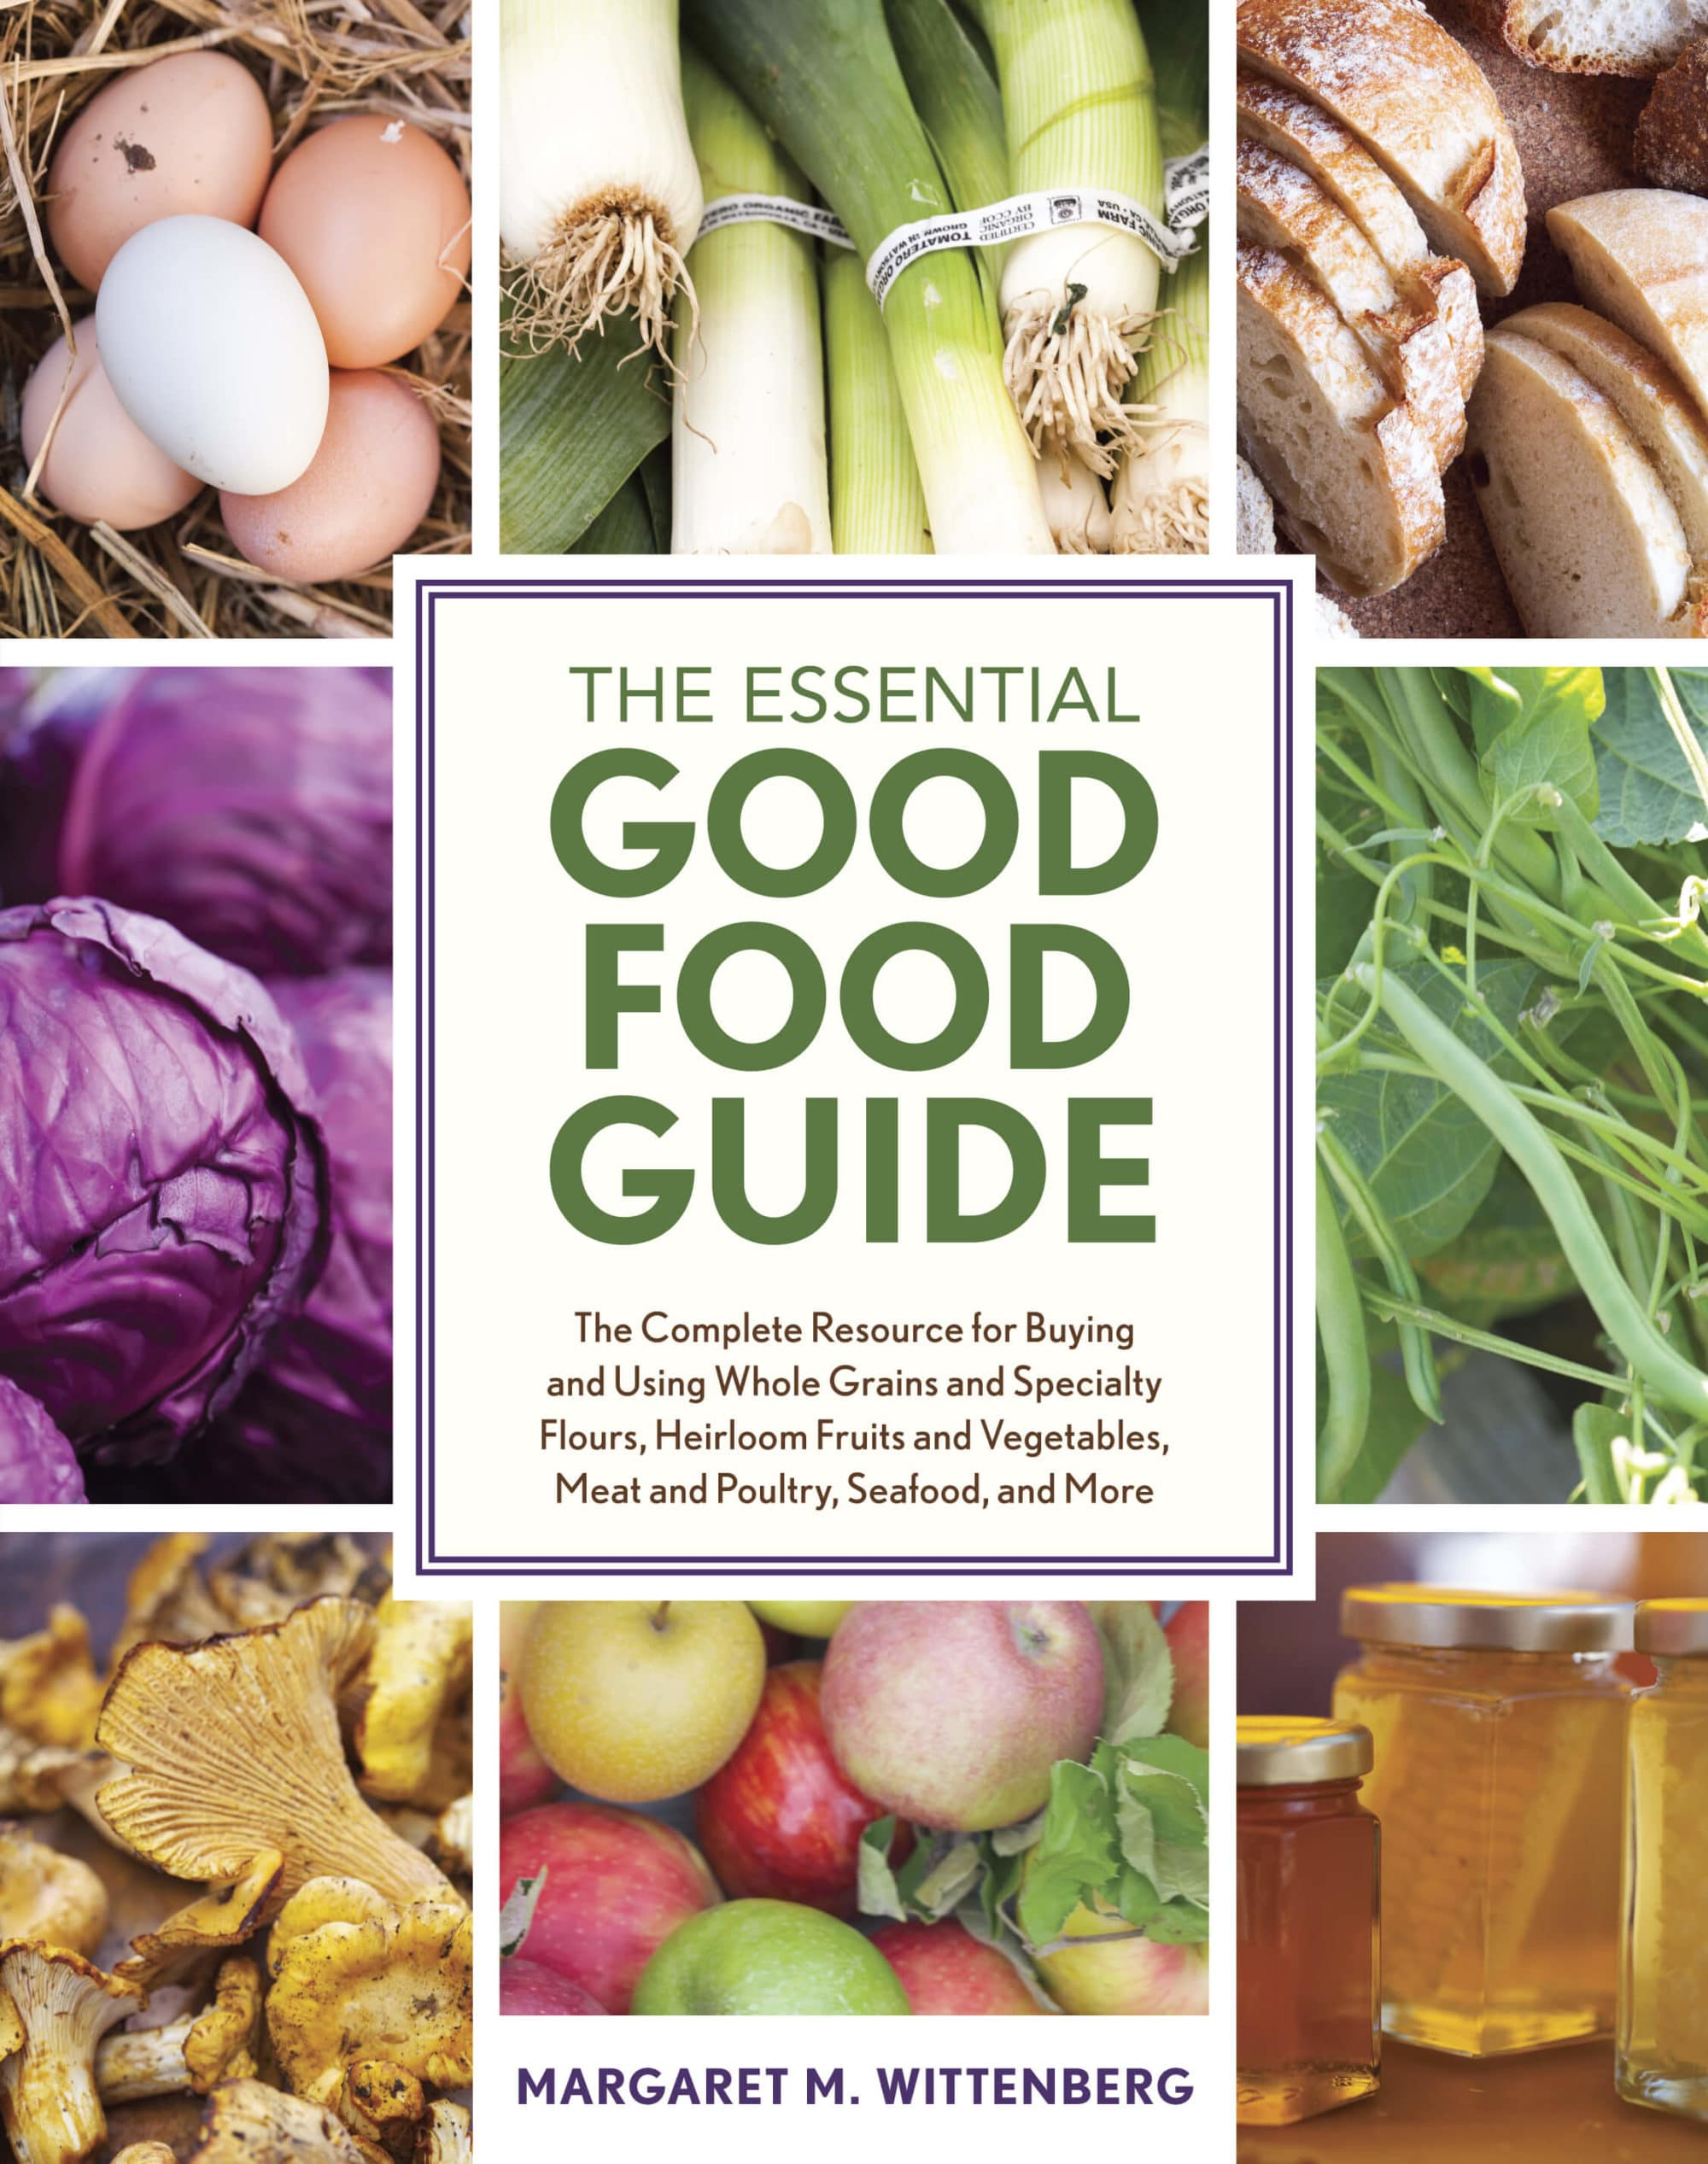 The Essential Good Food Guide Book Review {GIVEAWAY}